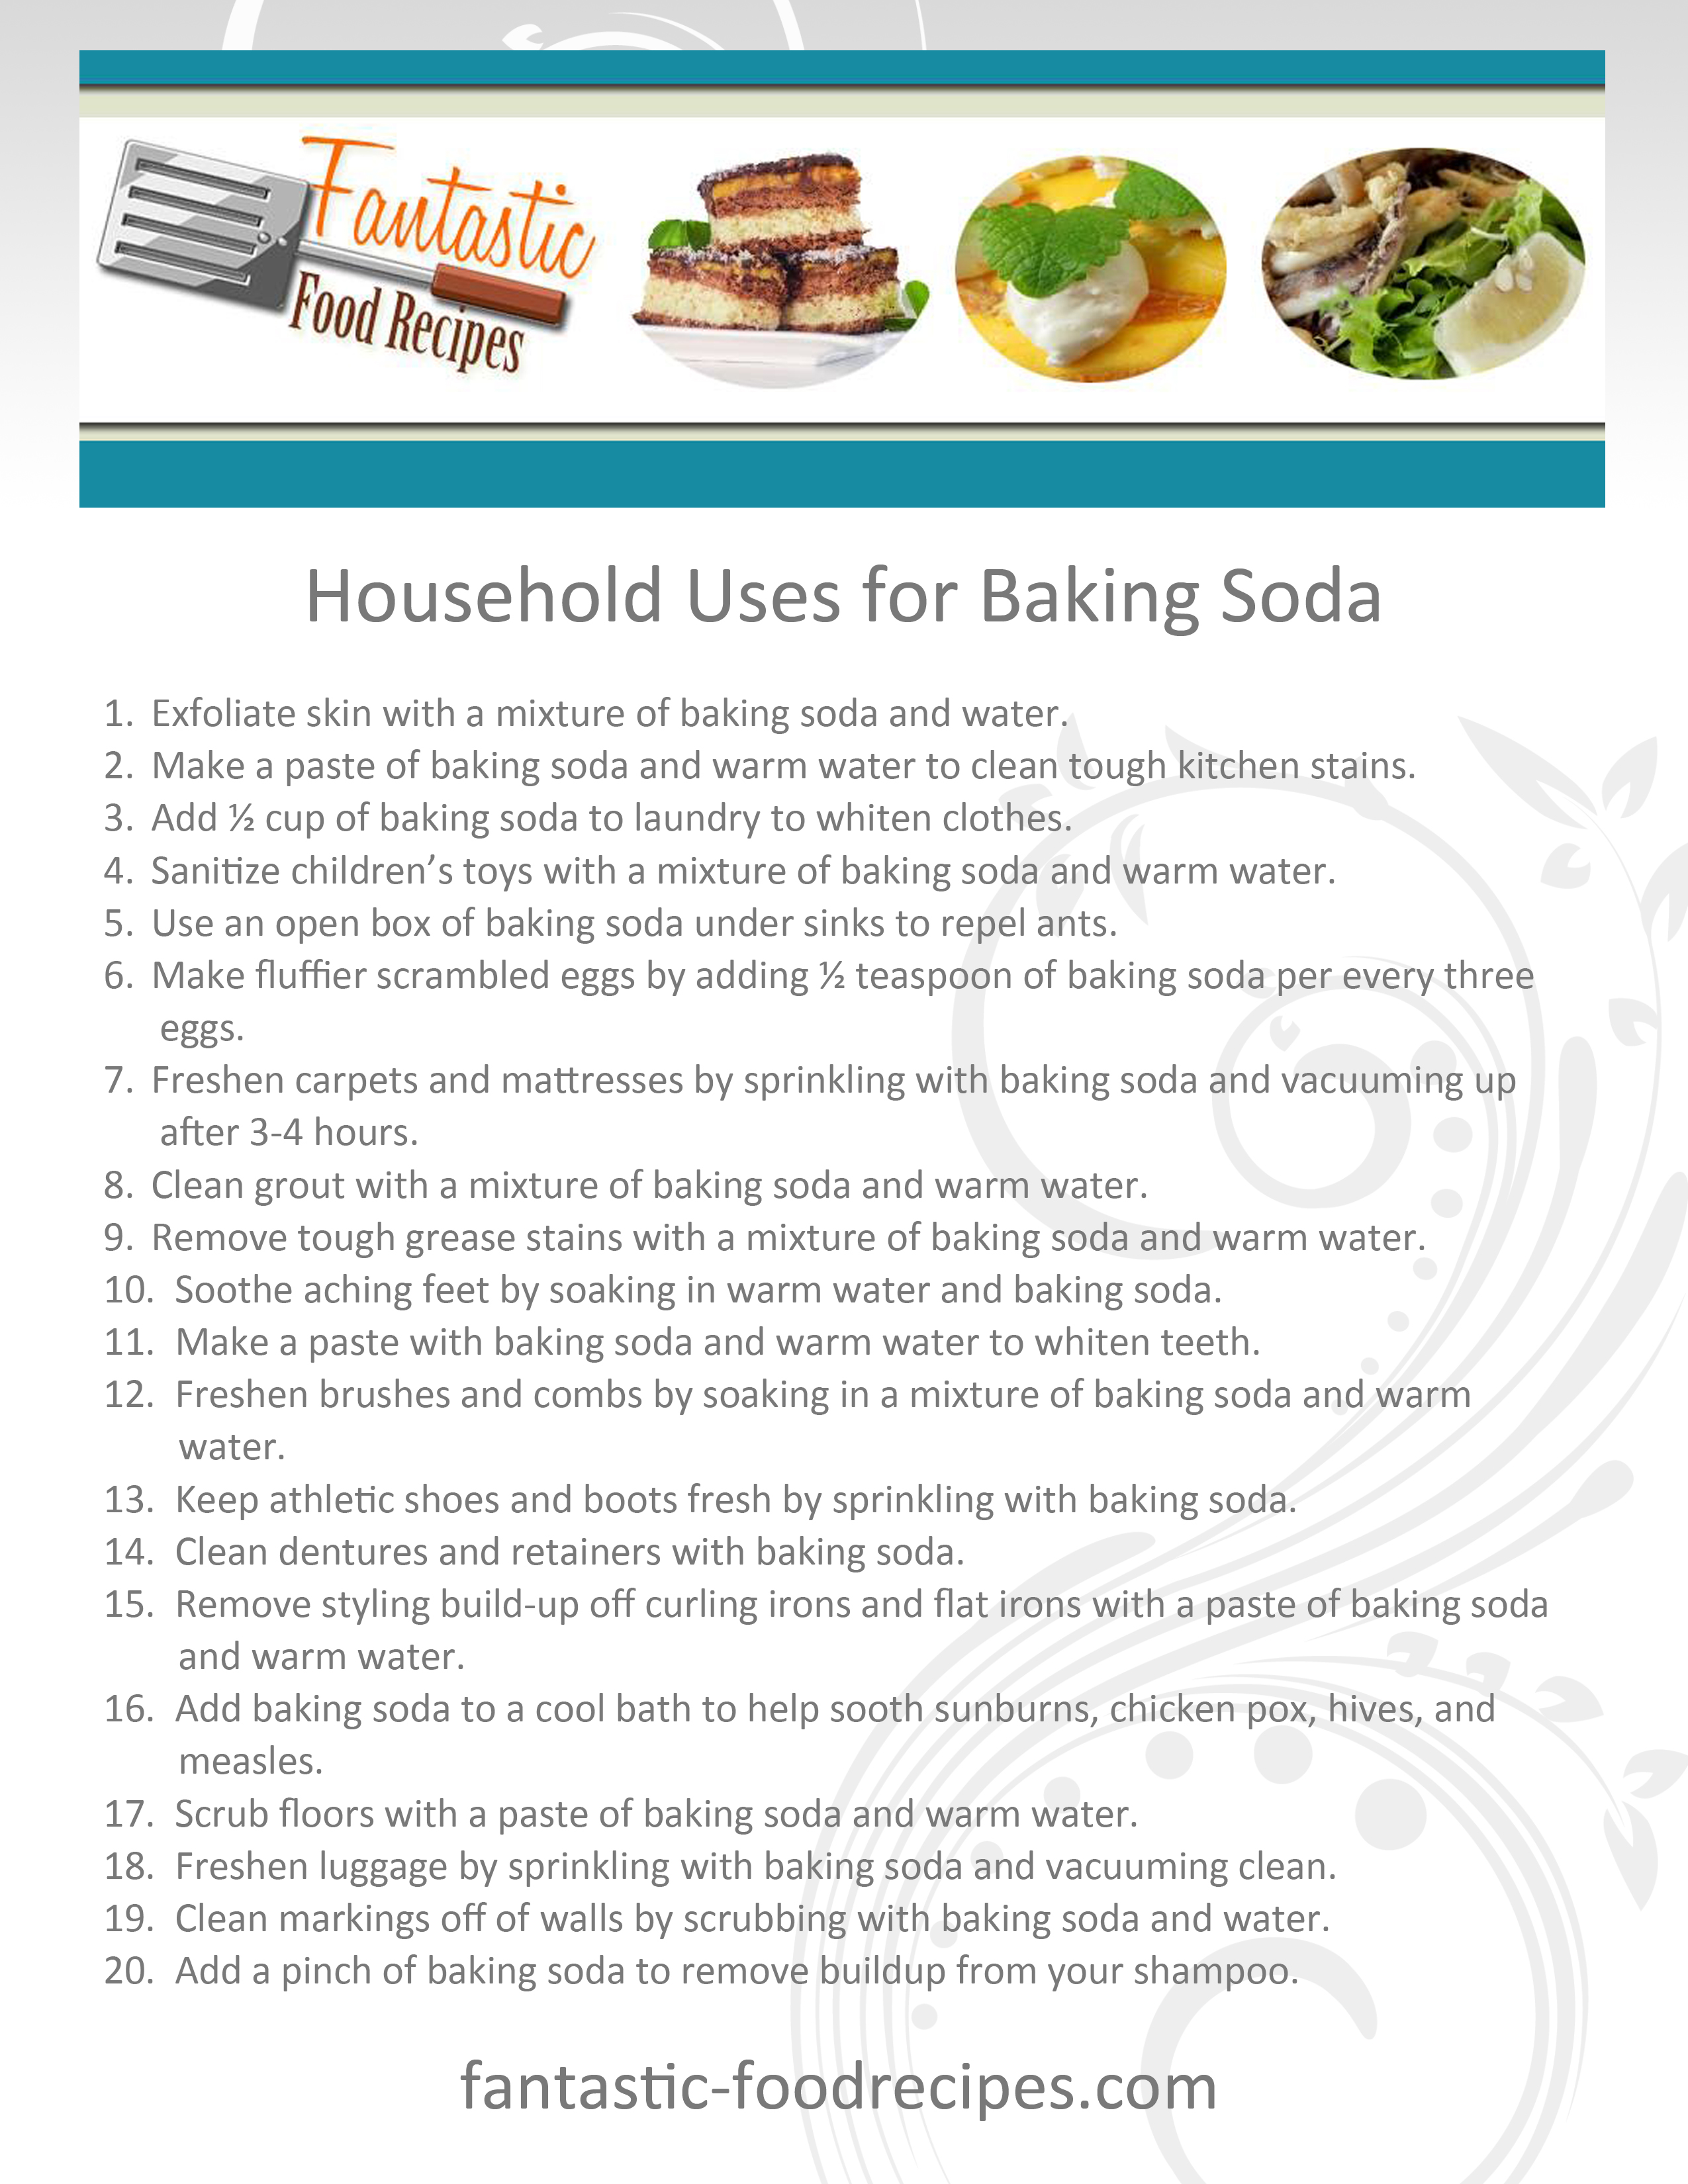 Household Uses for Baking Soda